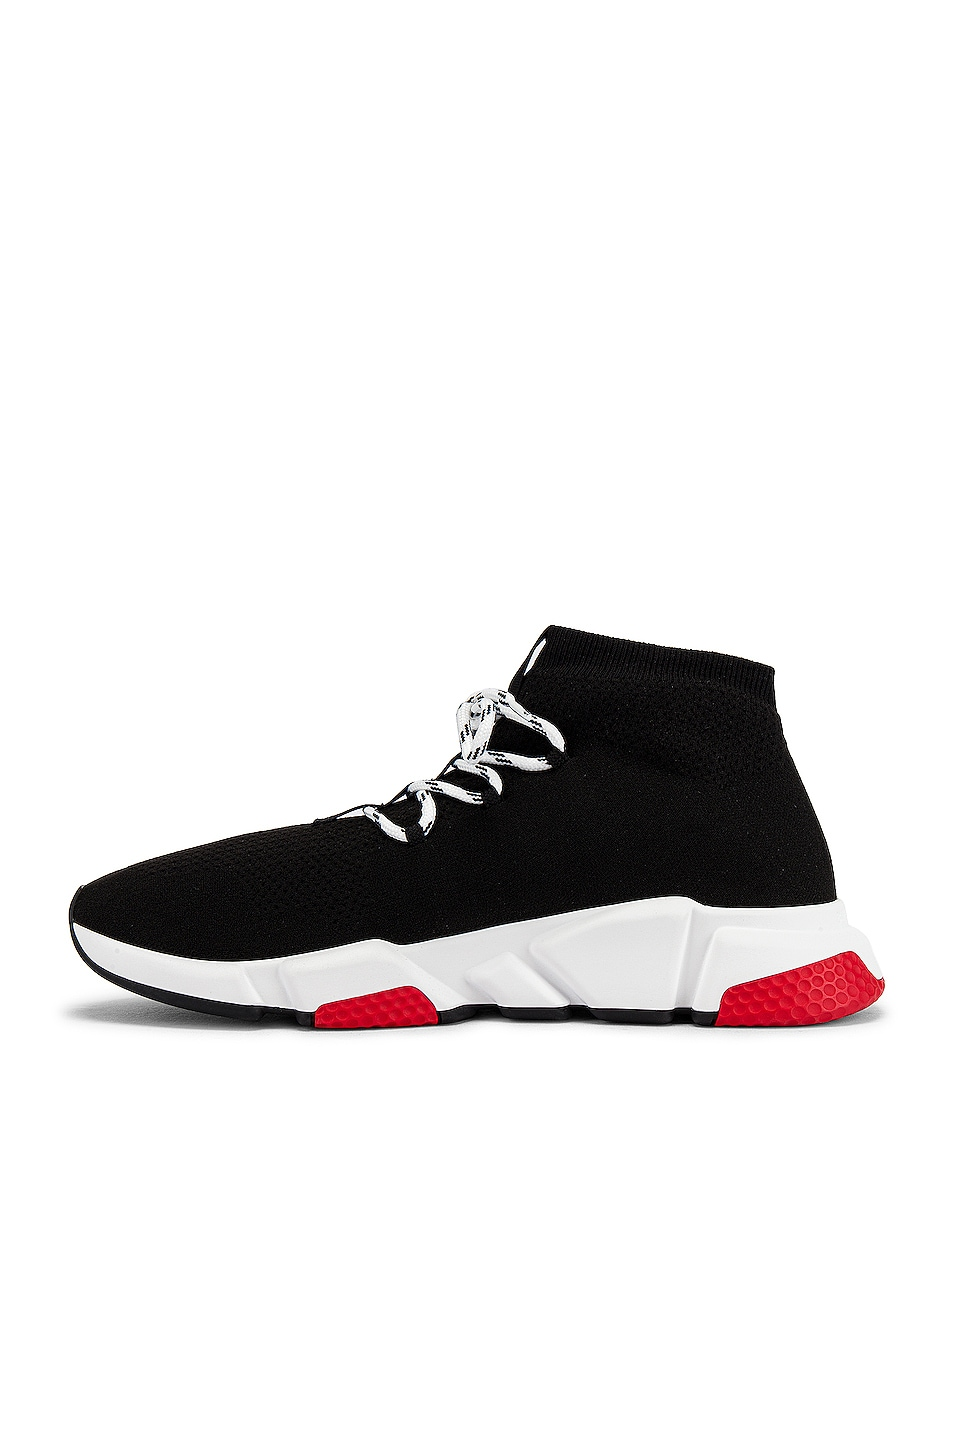 Image 5 of Balenciaga Speed Light Sneaker Lace Up in Black & White & Red & Black